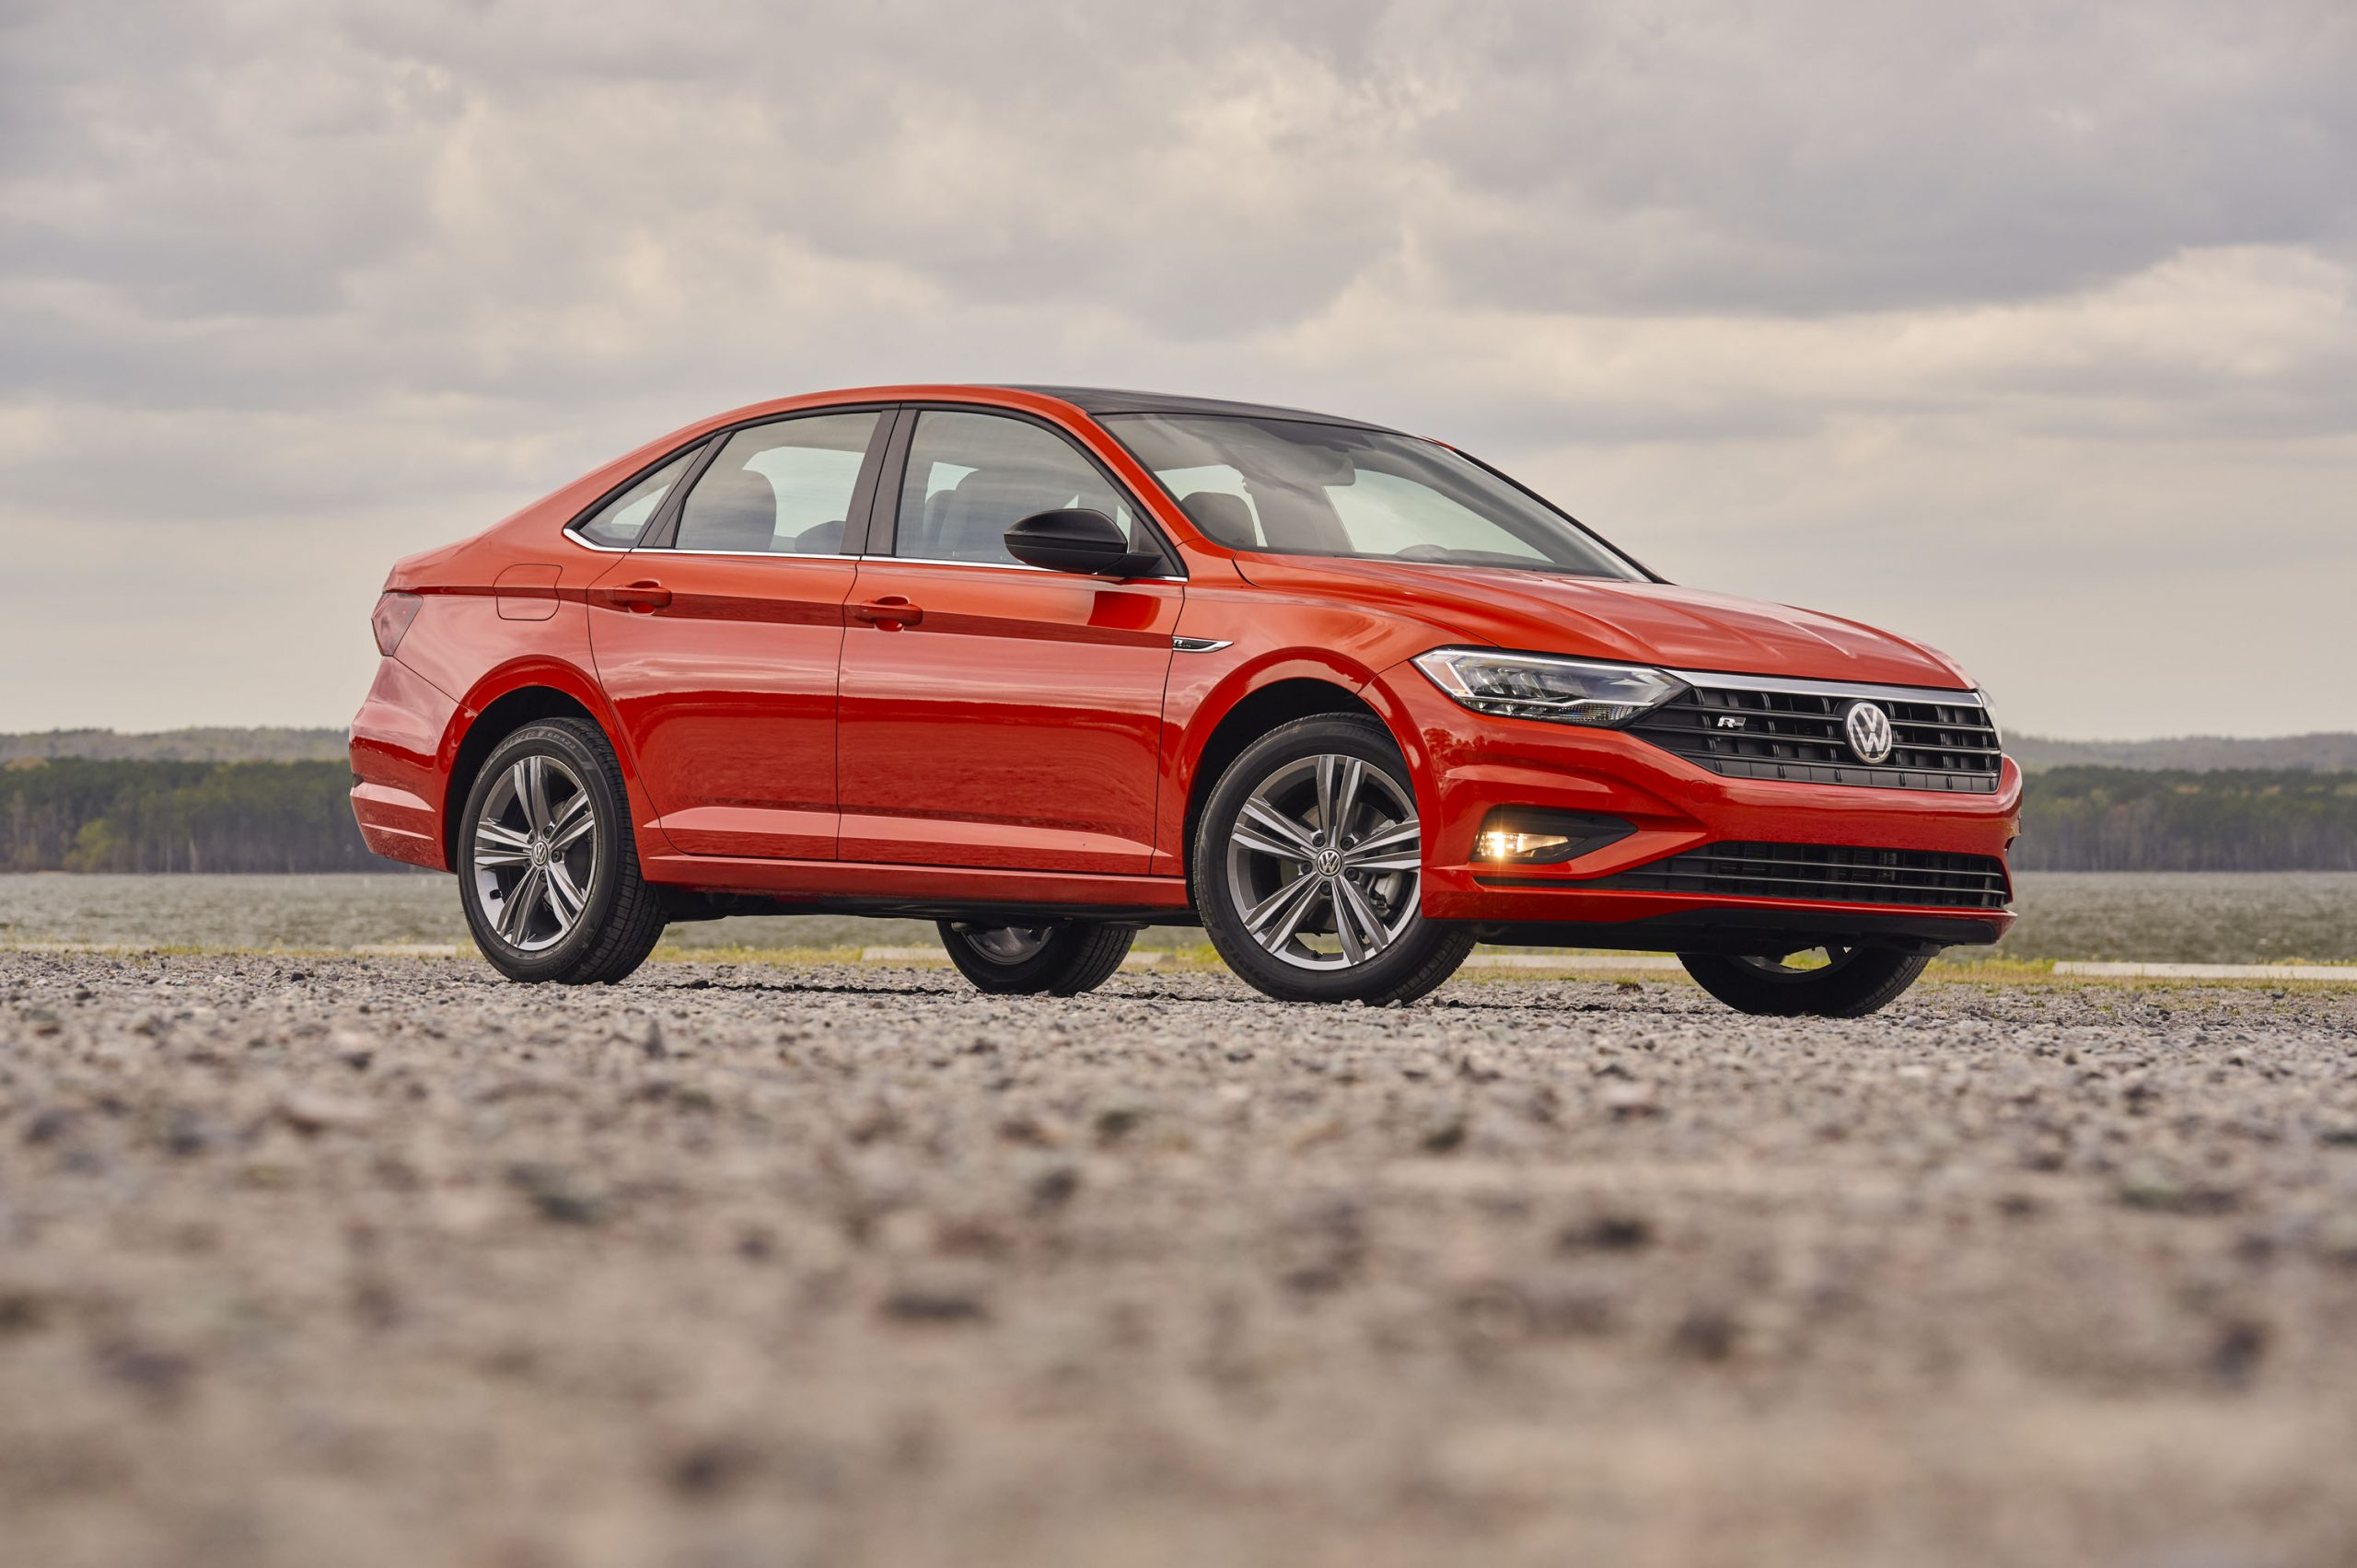 Is The 2019 Volkswagen Jetta The Most Fuel efficient Small